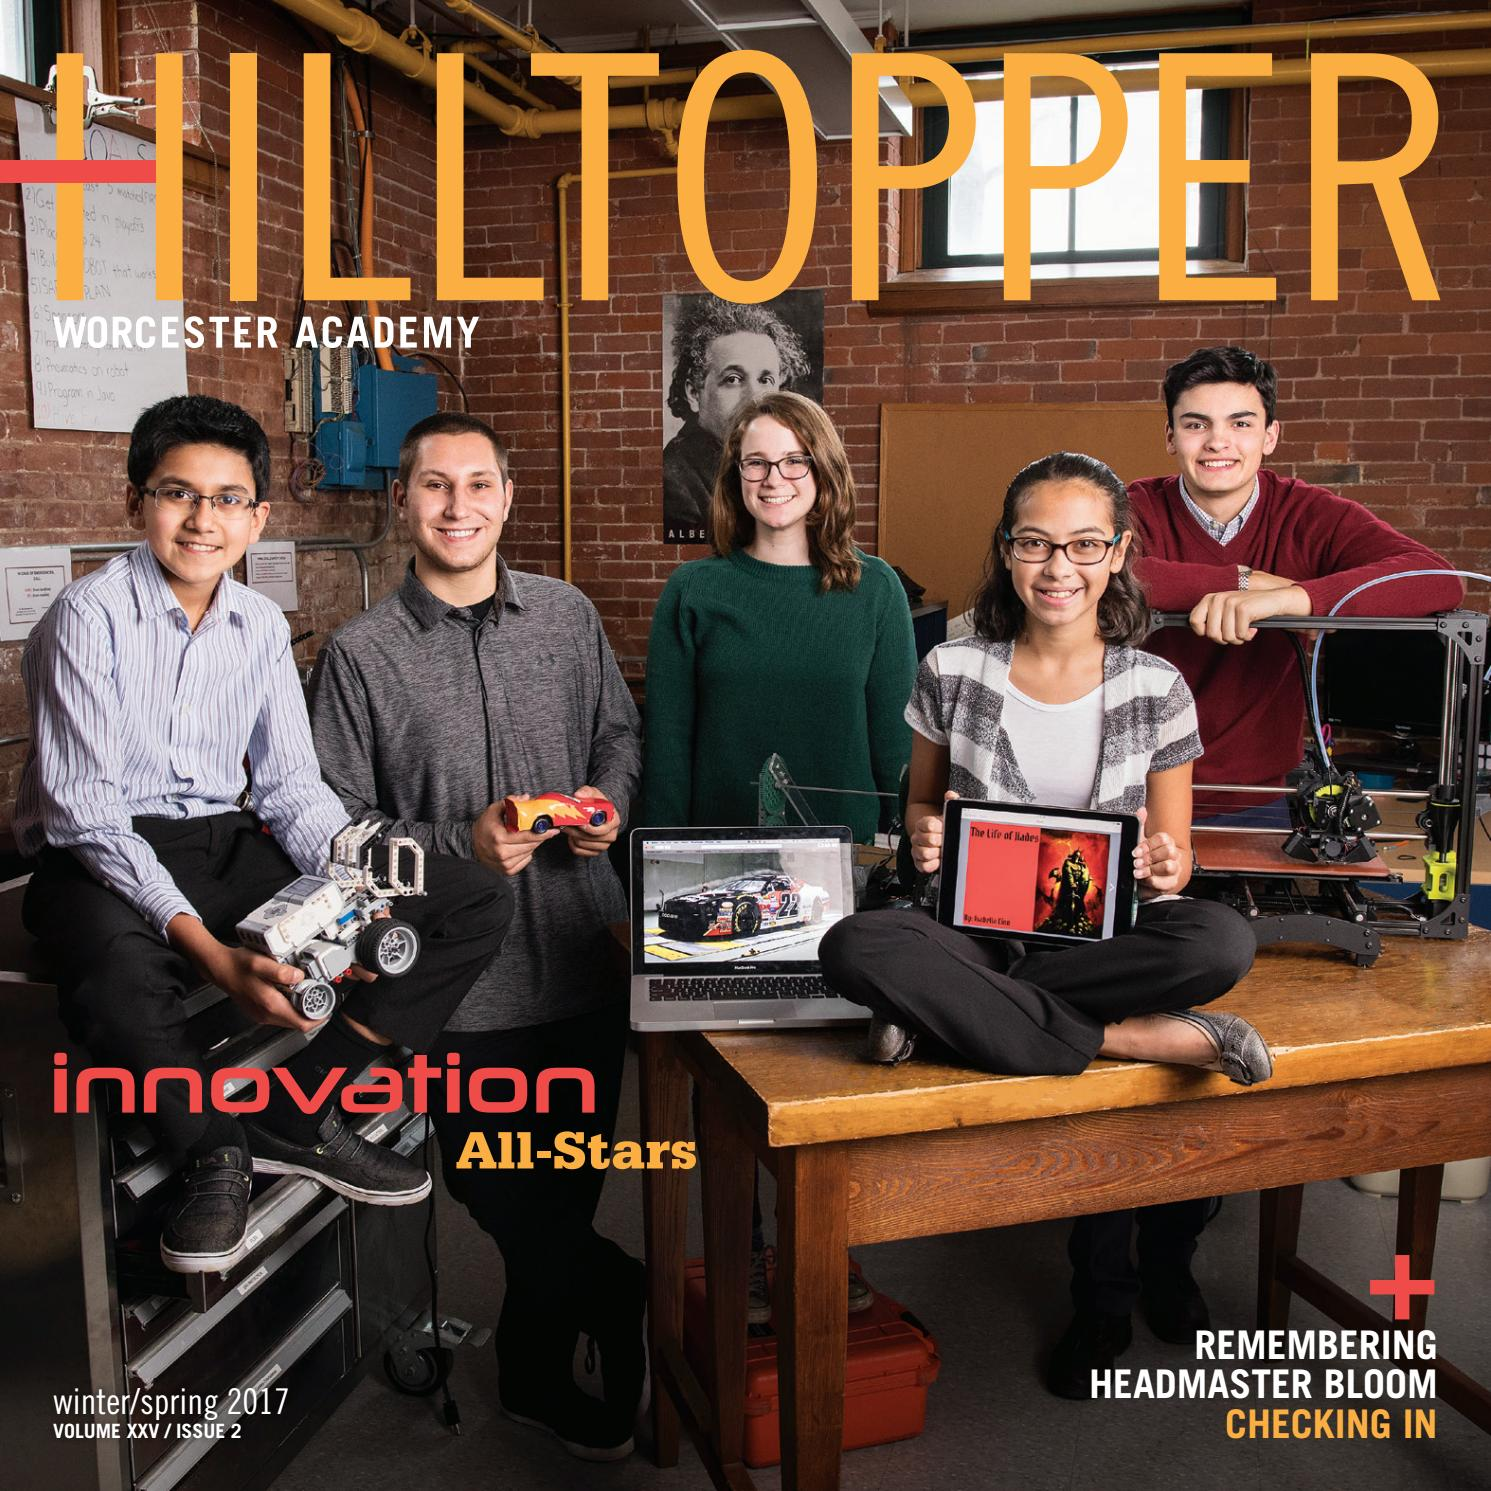 worcester academy hilltopper winter spring 2017 by good design issuu